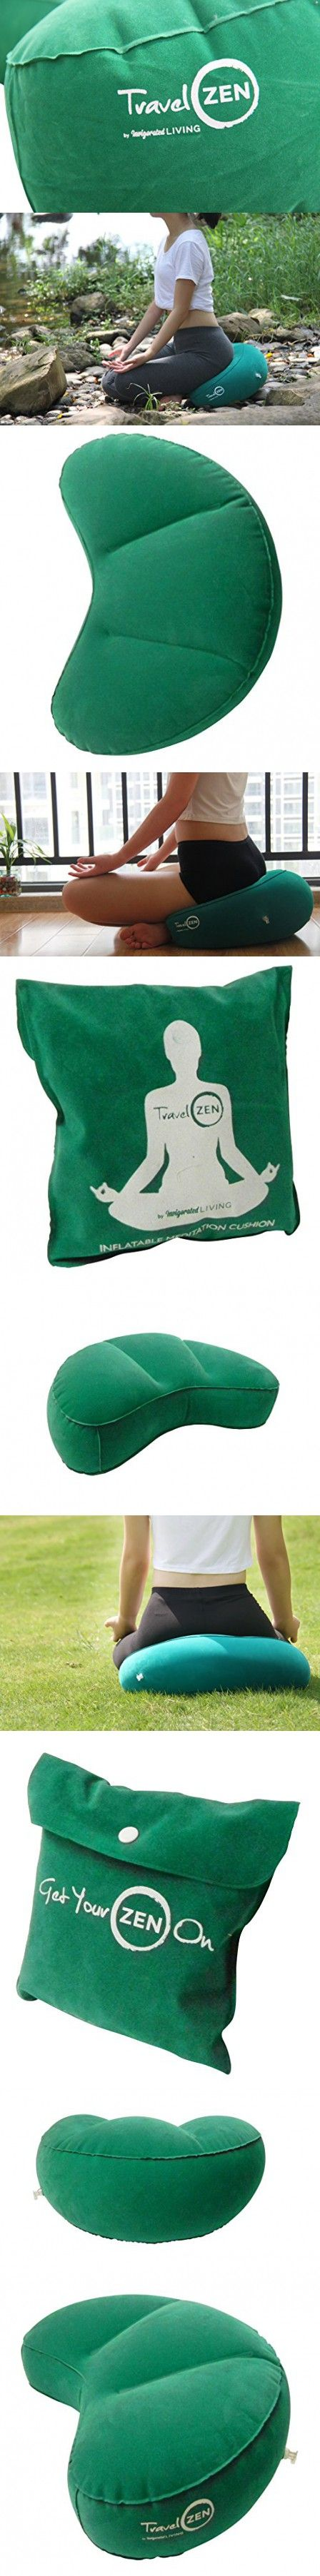 Travel ZEN Inflatable Crescent Meditation Cushion By Invigorated Living, Portable Yoga Meditation Pillow, No More Heavy Meditation Chair or Bench, Quality Construction, Durable Material (Green)